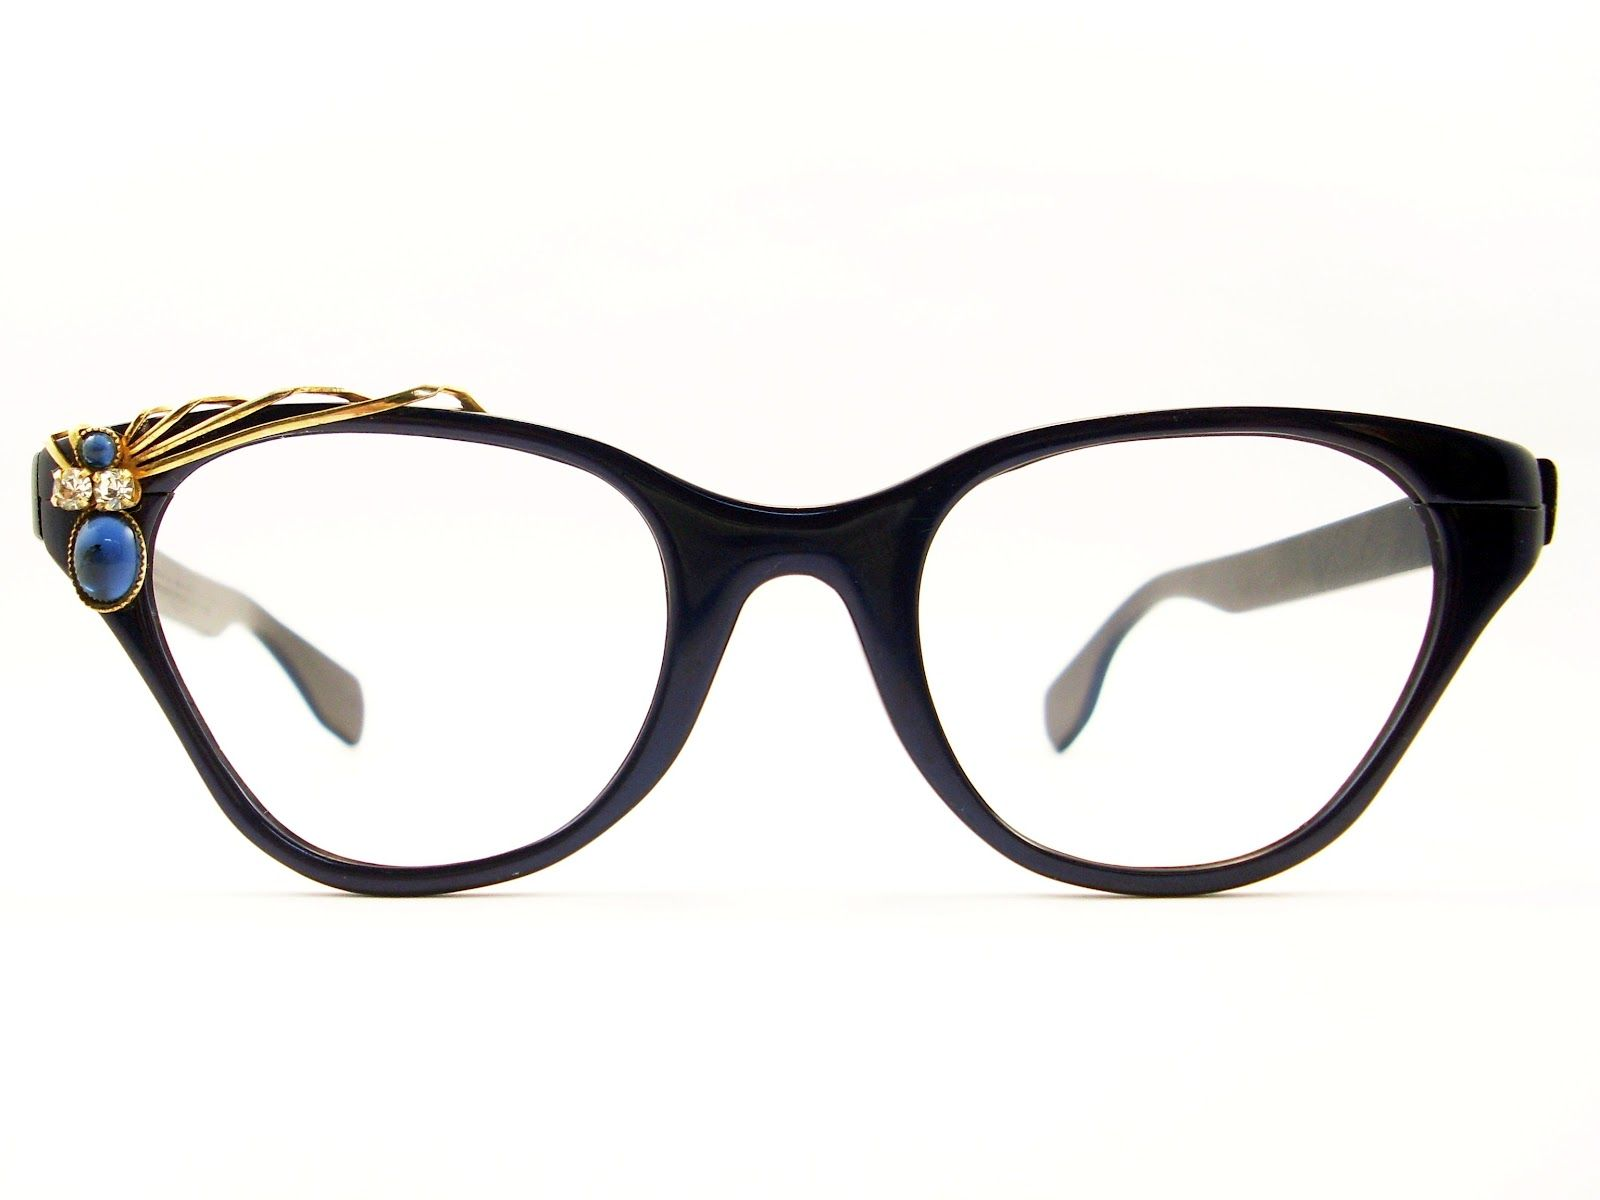 Four Trendy Eyewear Frames to Kick up Your Style